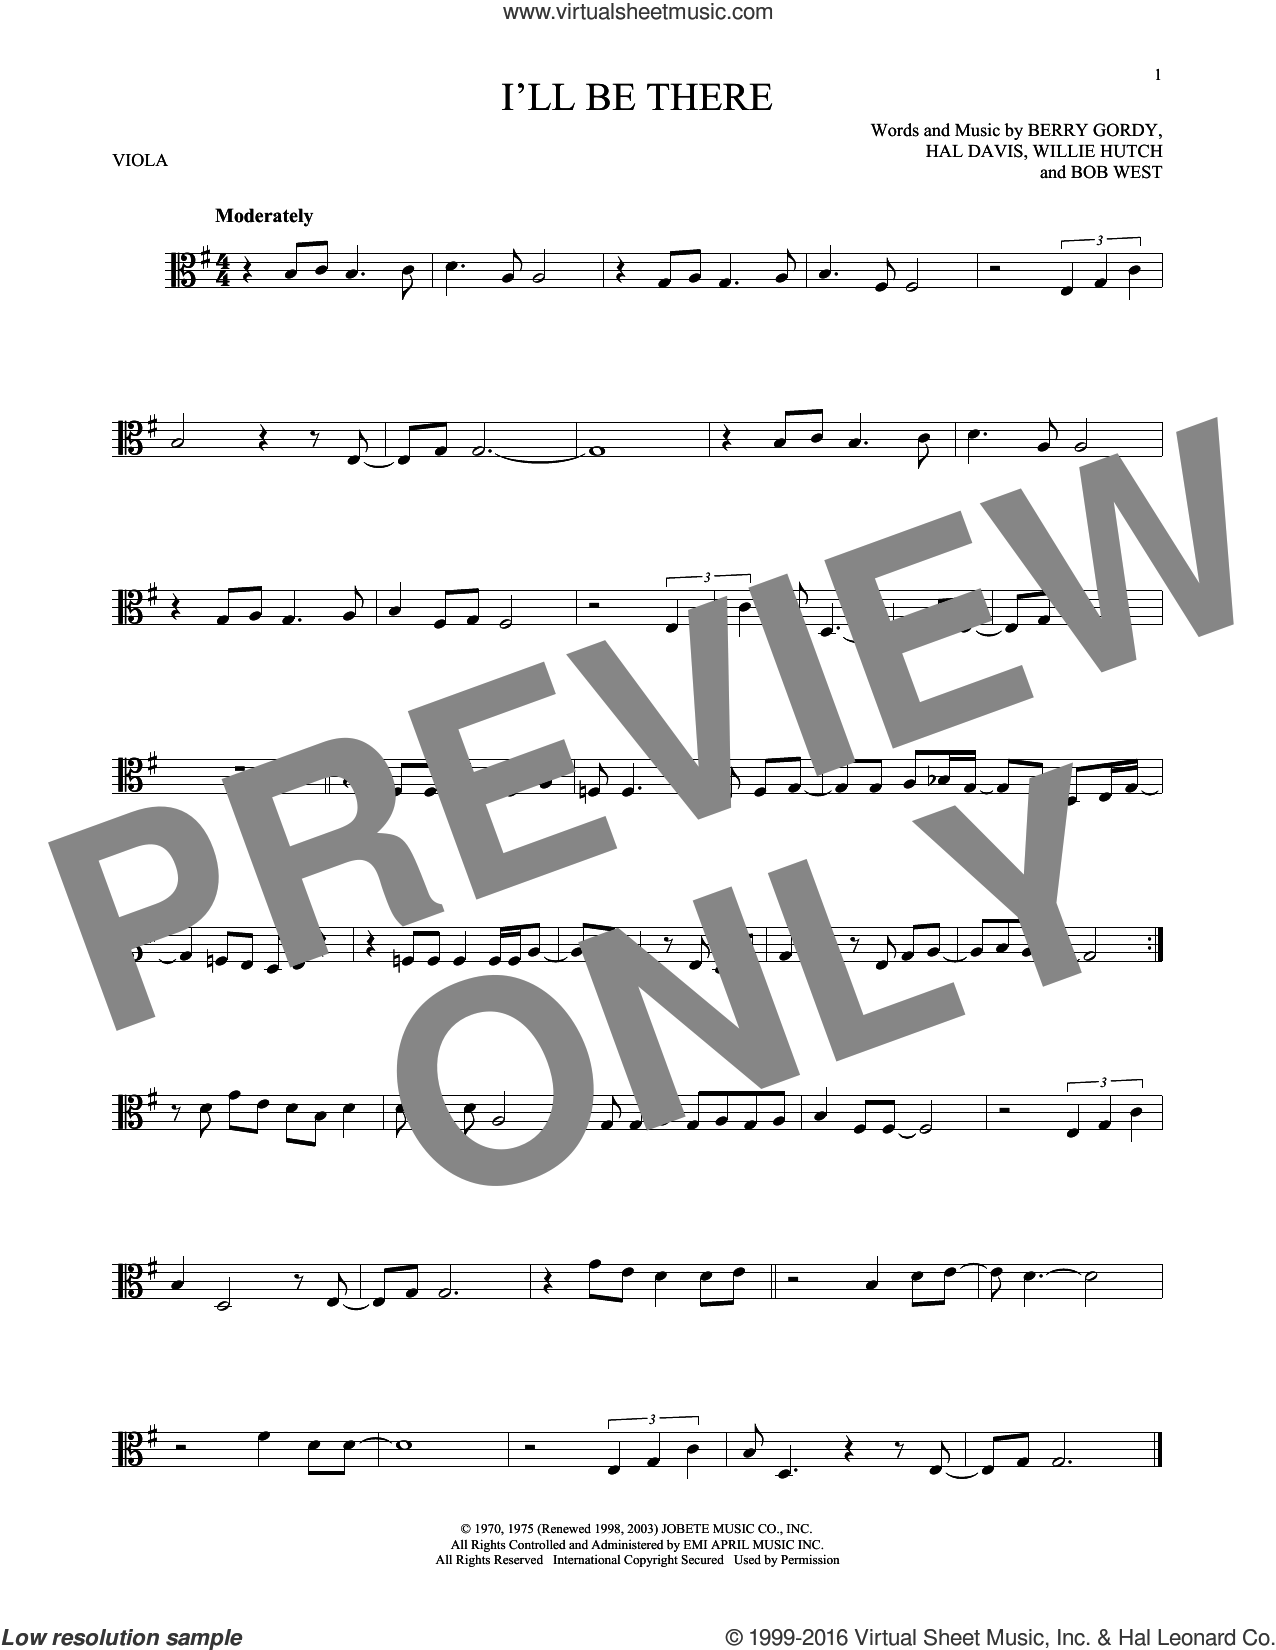 I'll Be There sheet music for viola solo by The Jackson 5, Berry Gordy Jr., Bob West and Hal Davis, intermediate skill level